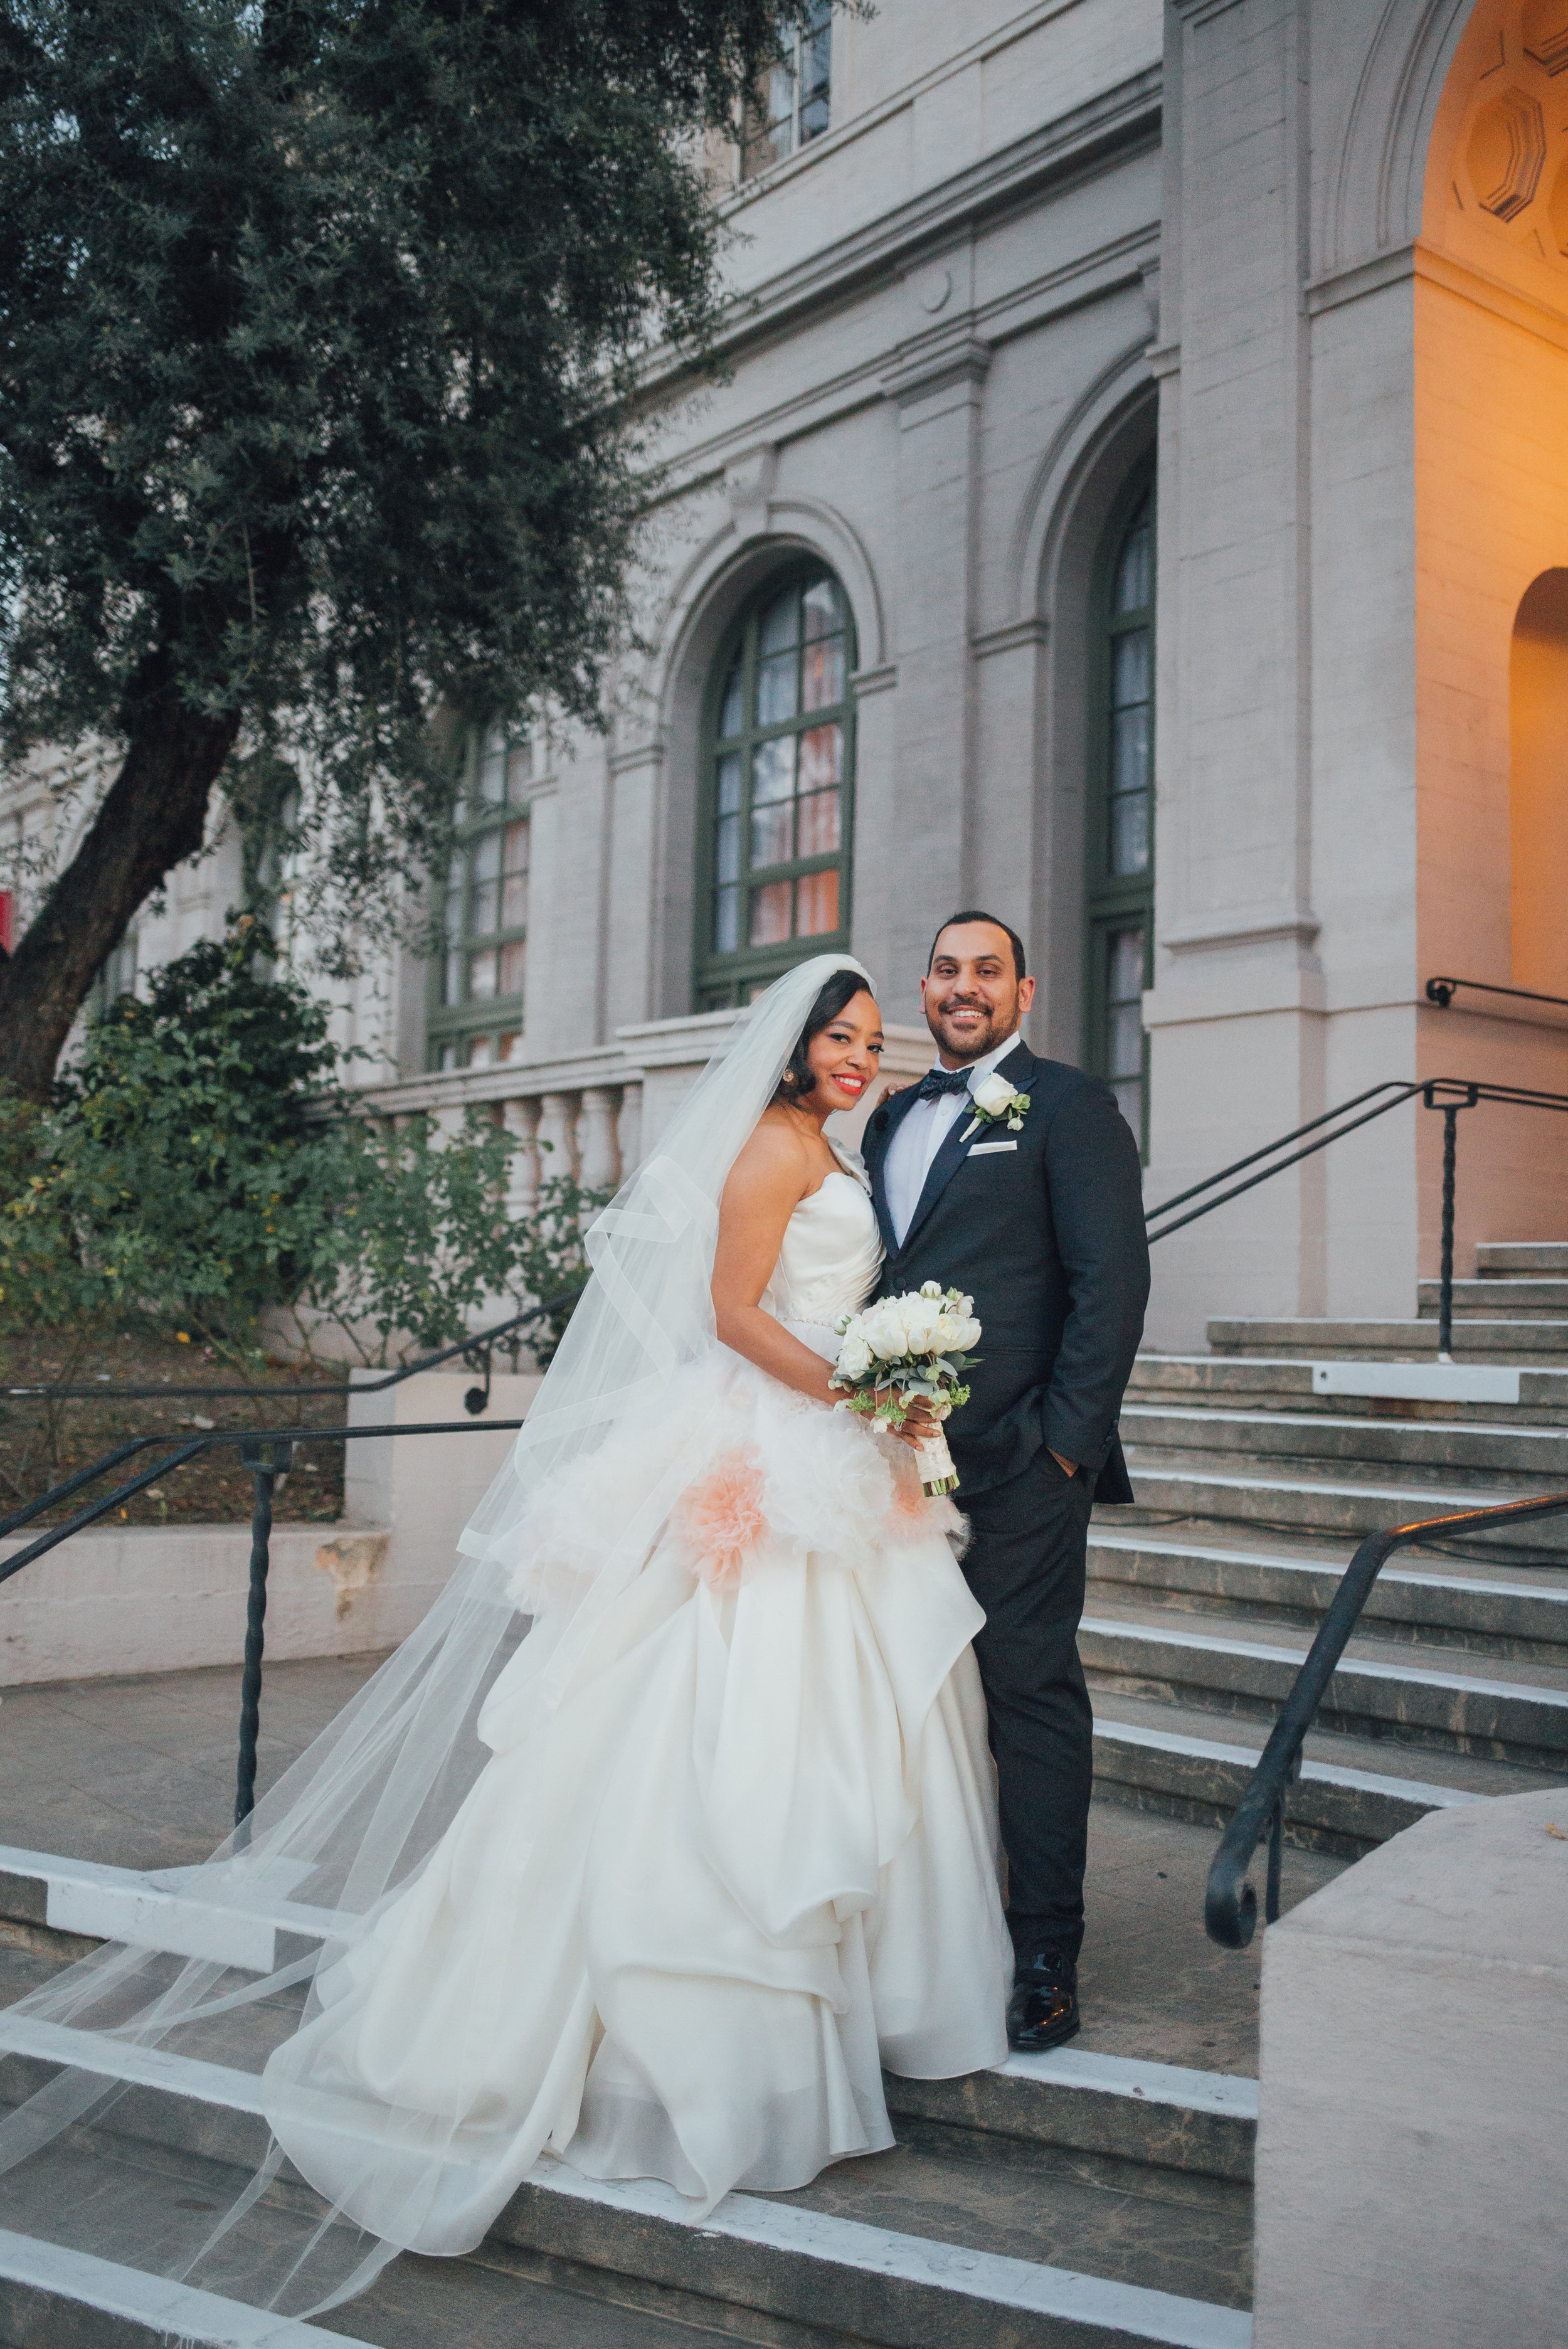 krystal and ananth wedding with cluster events church pic.JPG